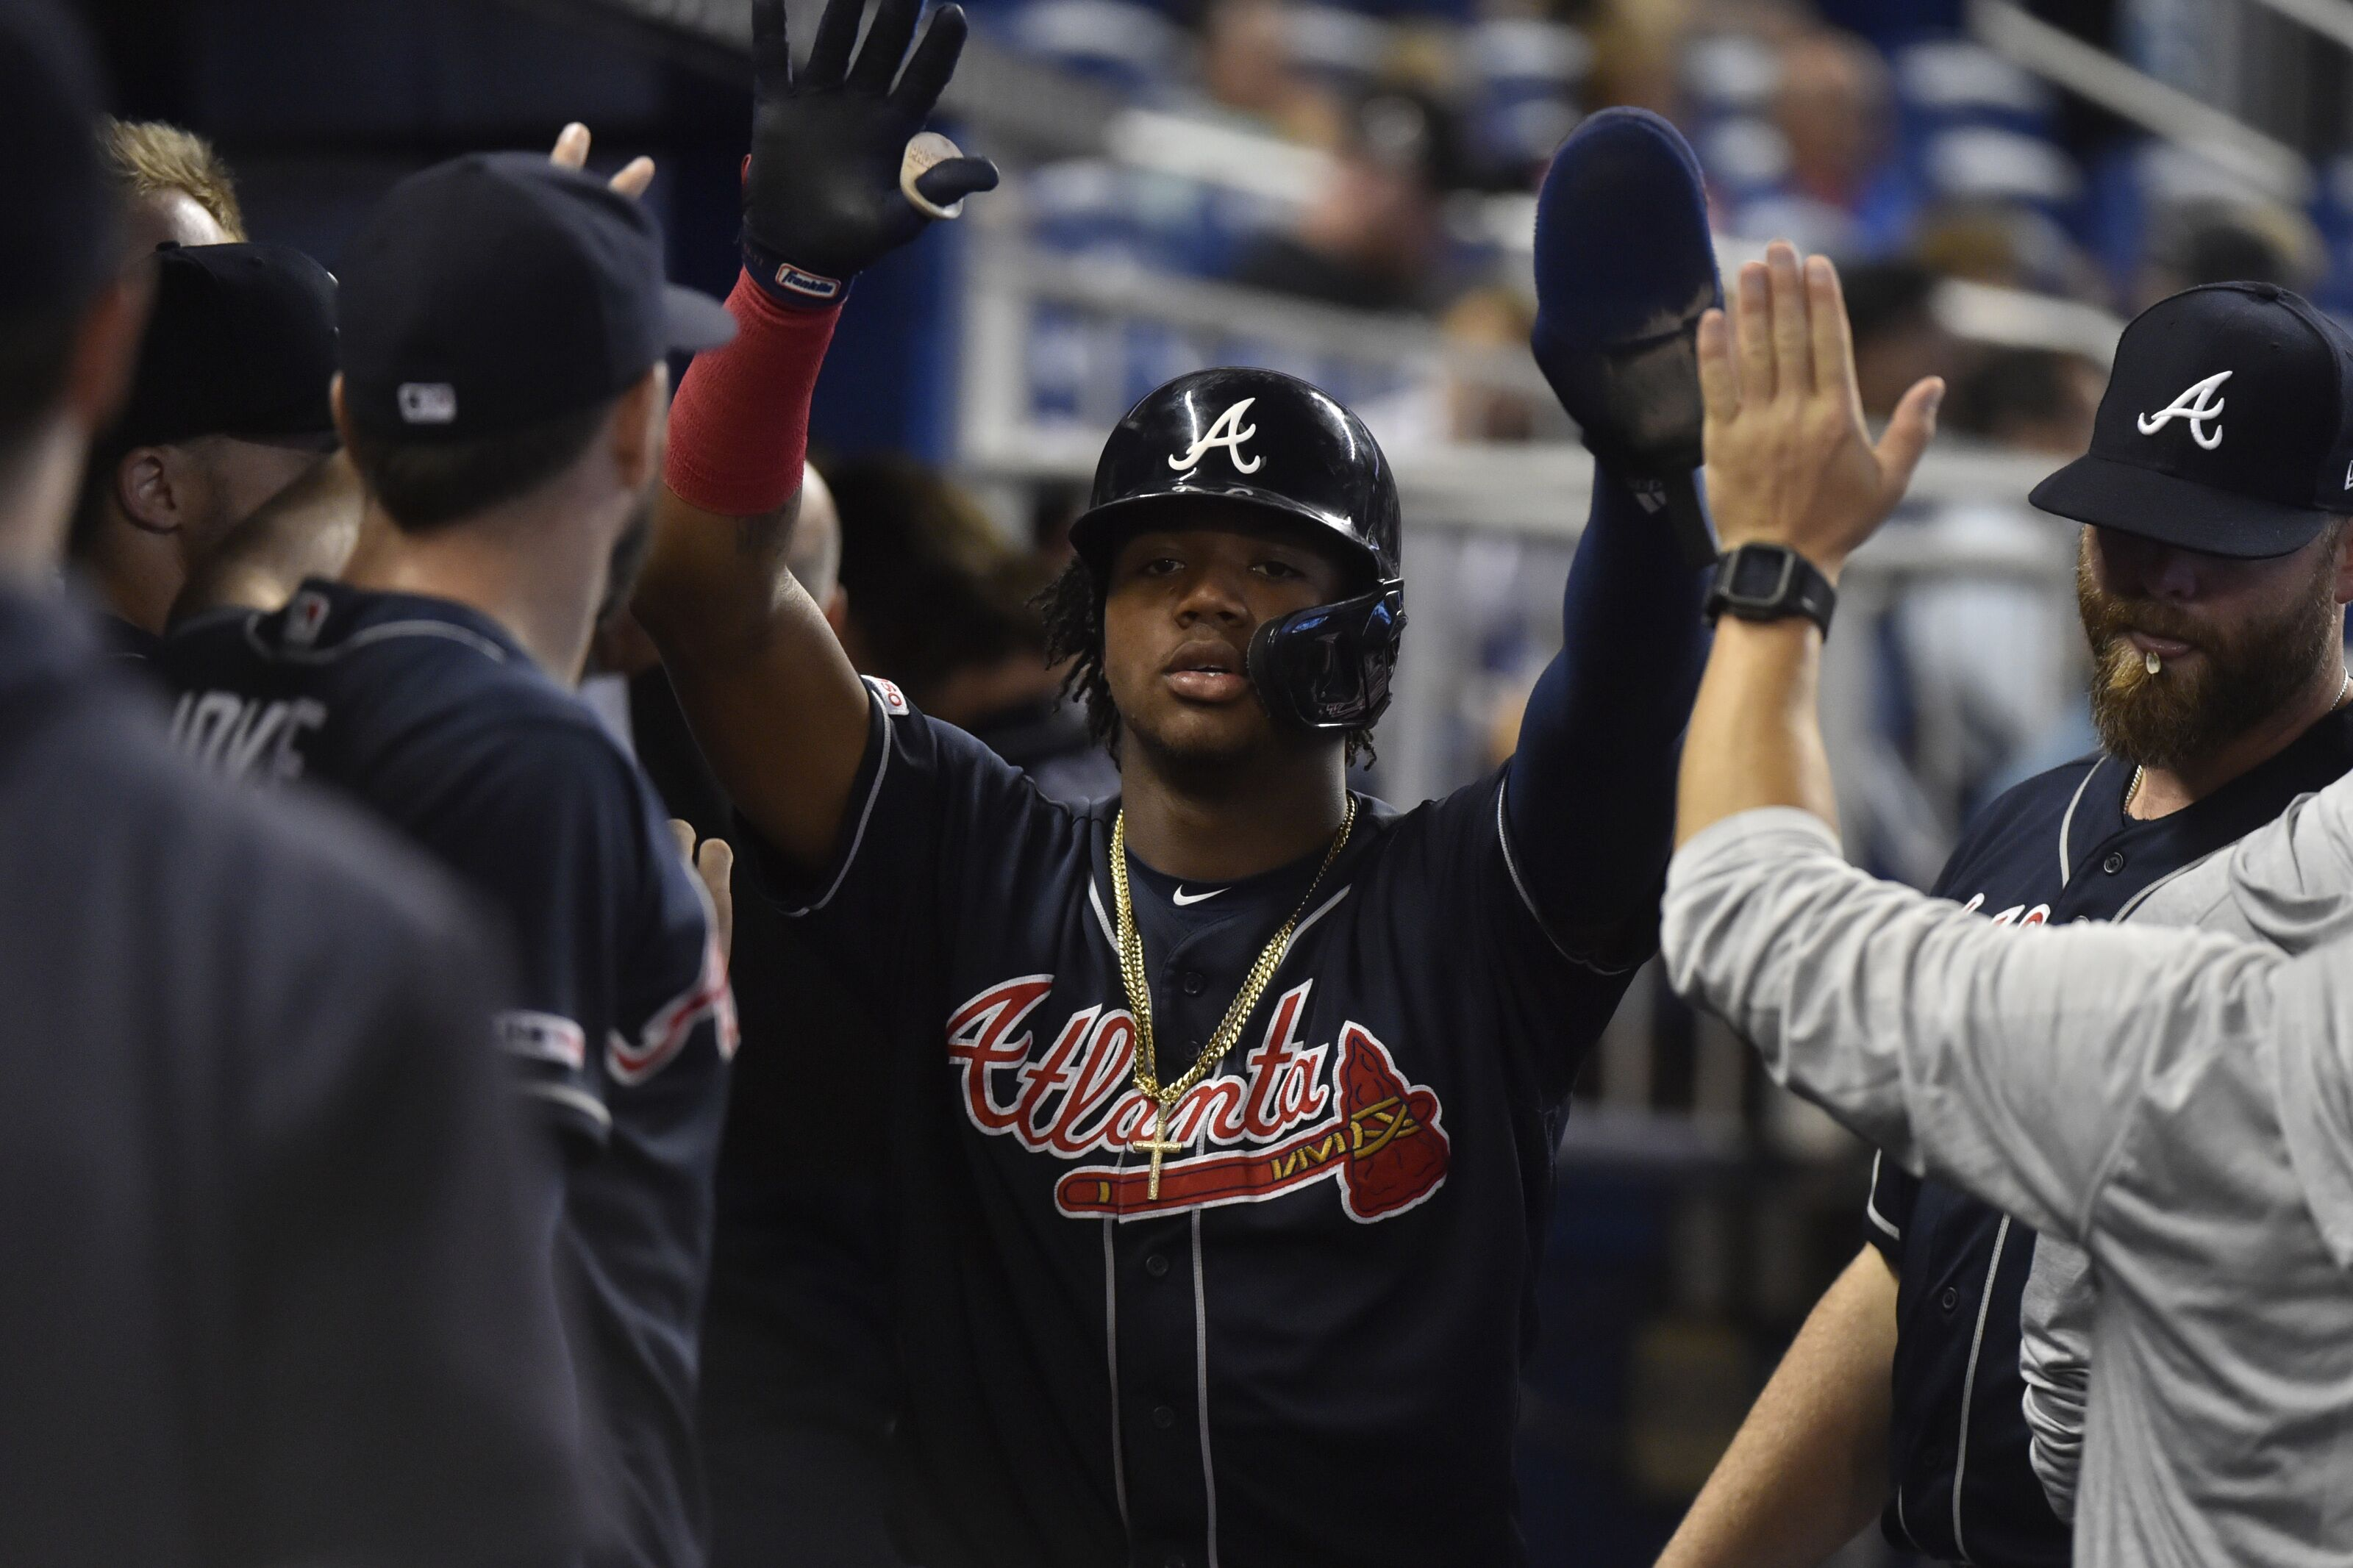 Atlanta Braves: Ronald Acuna pimps a single, gets benched